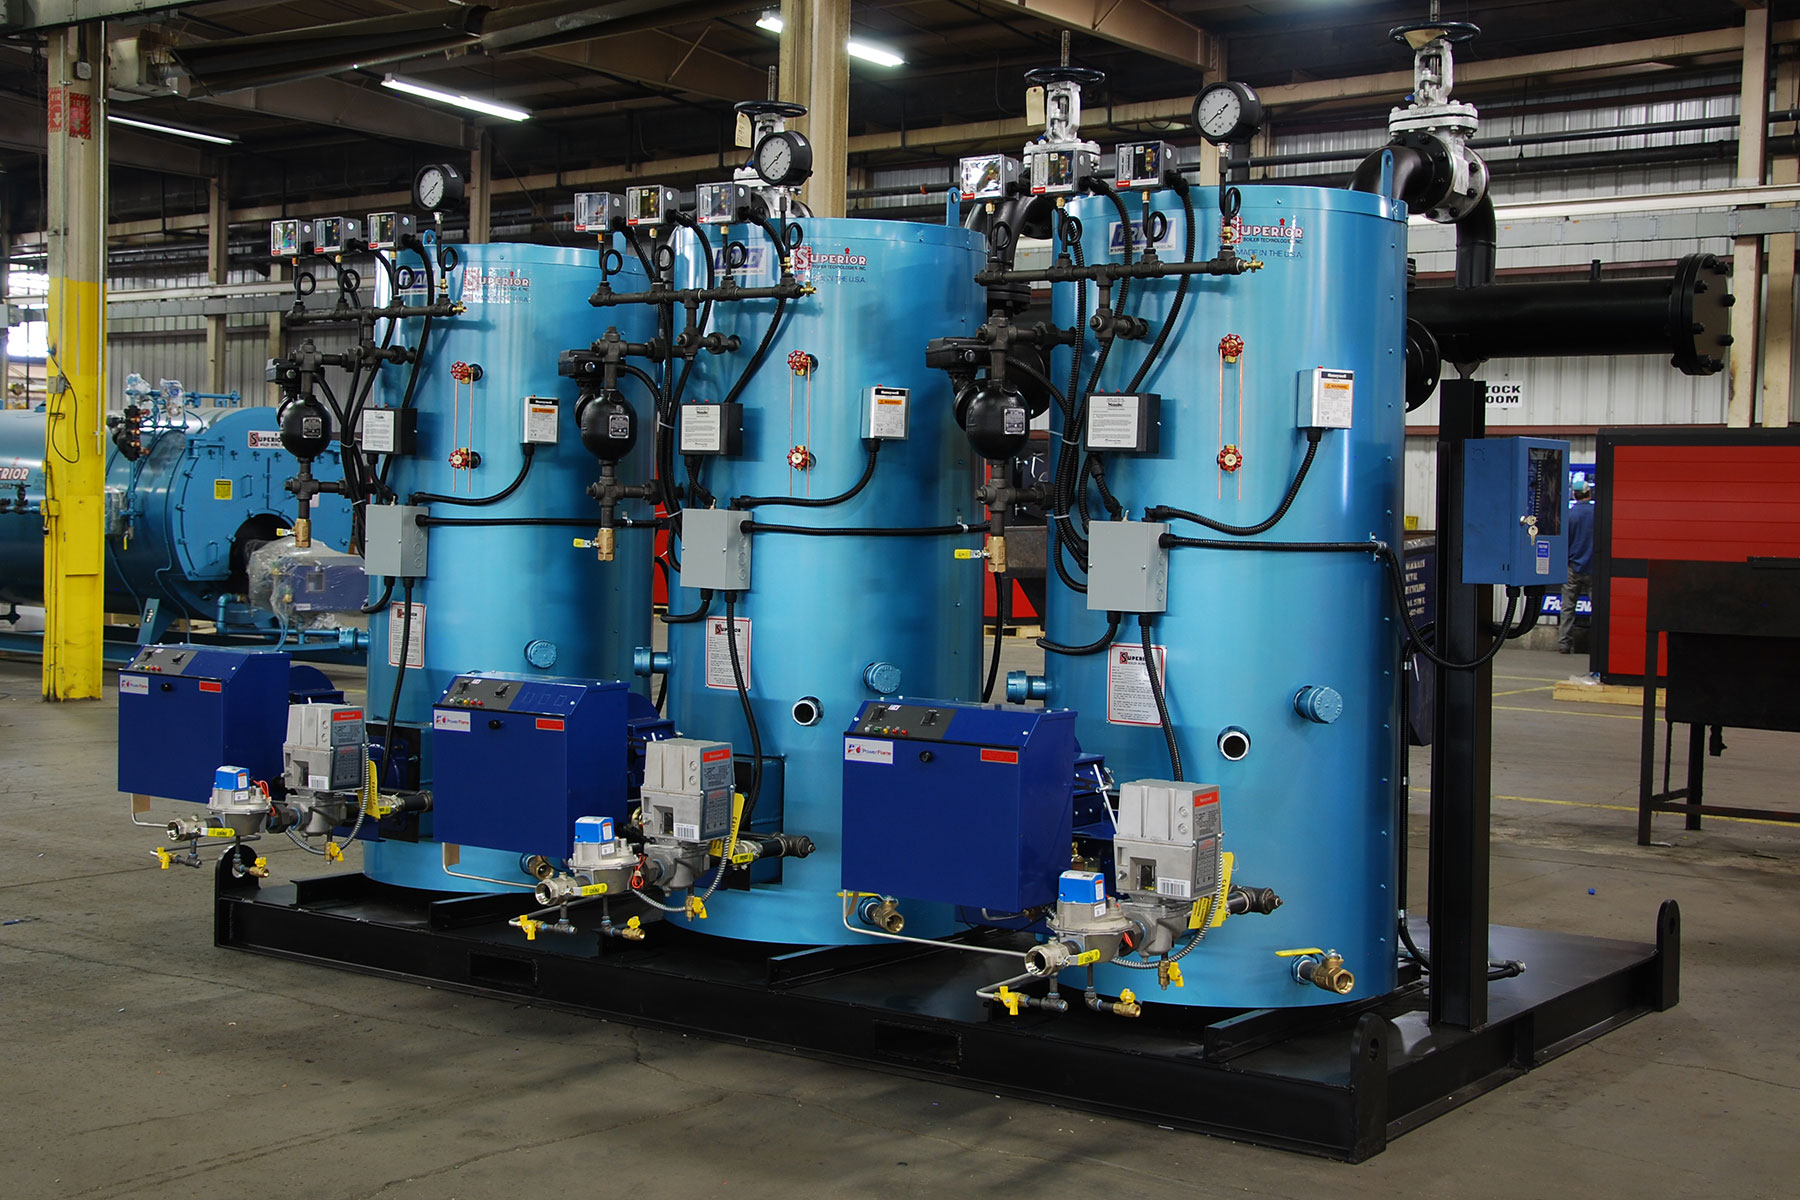 Commercial boiler London has given people what they want